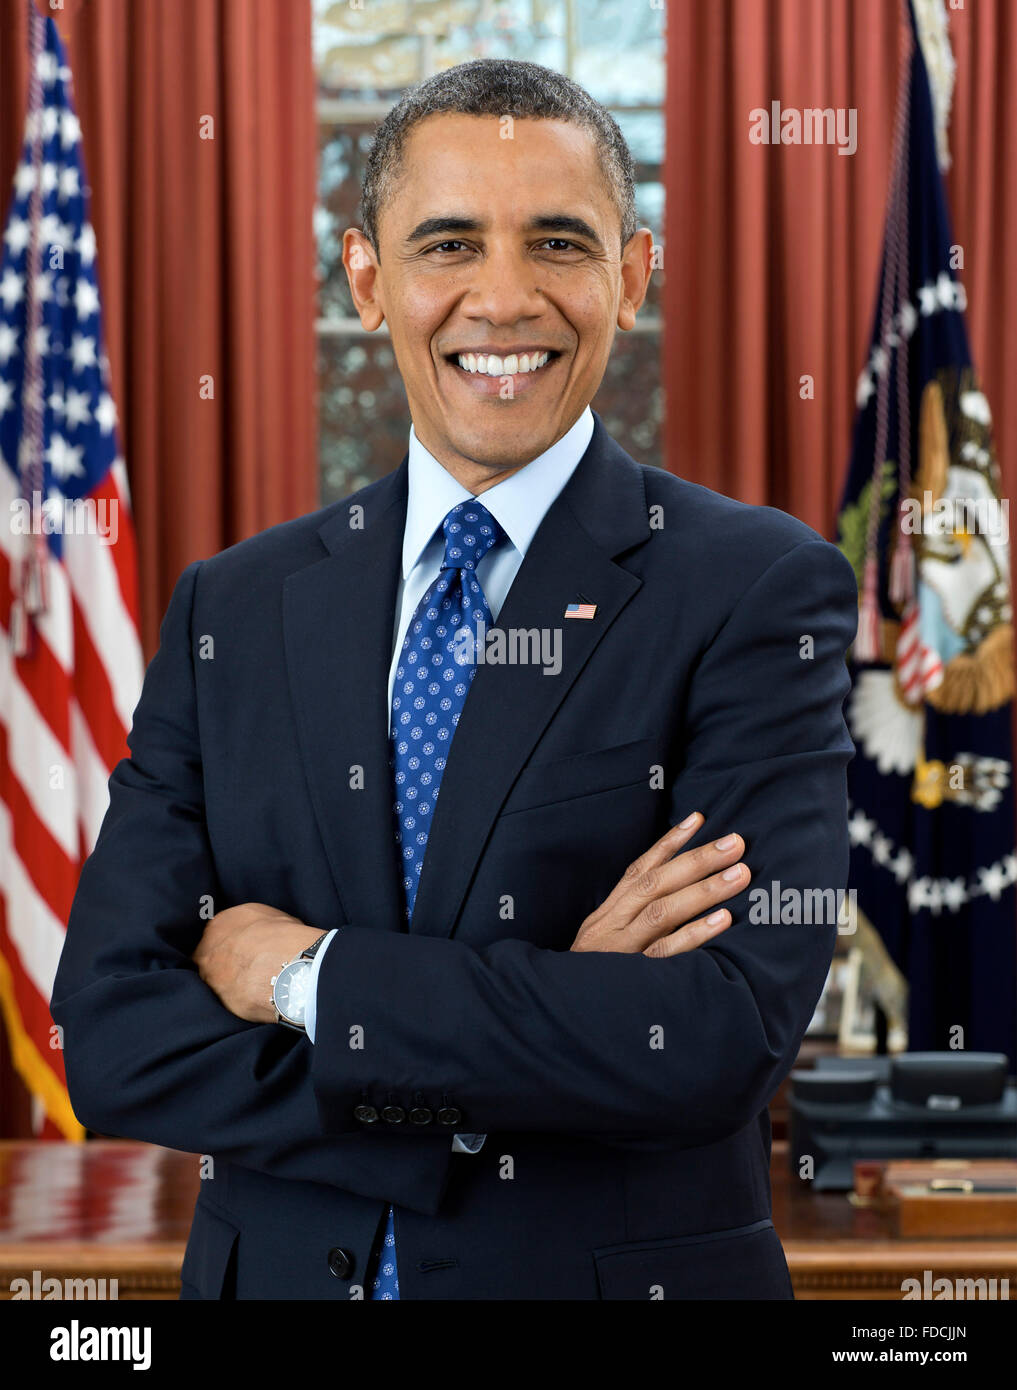 Barack Obam, Portrait. Official White House portrait of Barack Obama, the 4th President of the USA, December 2012 - Stock Image